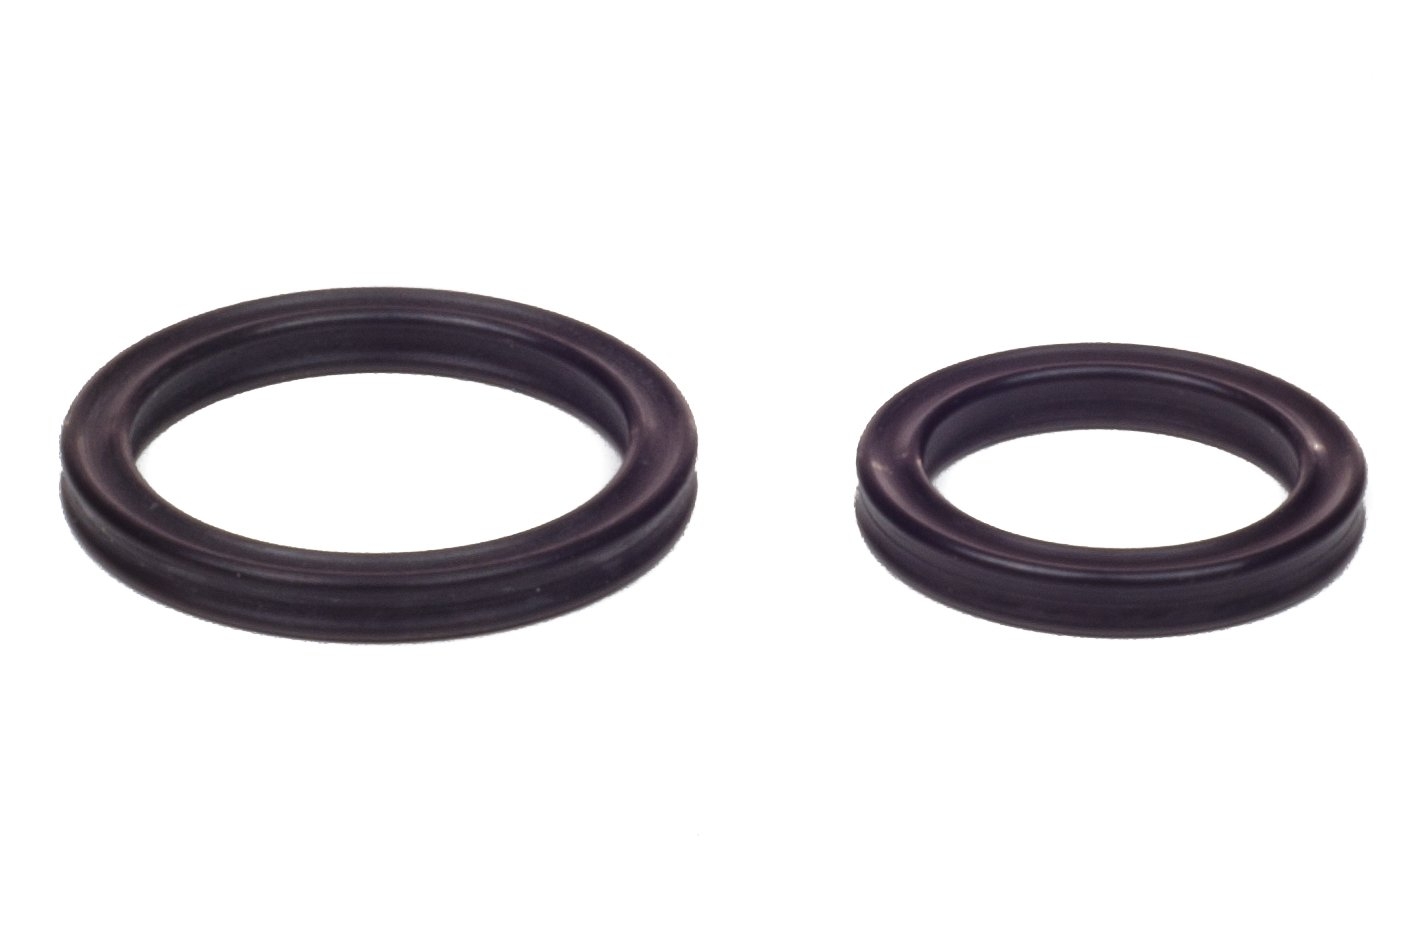 Seastar HS5176 Aftermarket Helm Seal Kit - Sea Star Hydraulic Steering Kit for Boat Helm for HH5271 & More by Kit King Teleflex HC5345 Boats by Kit King USA (Image #4)